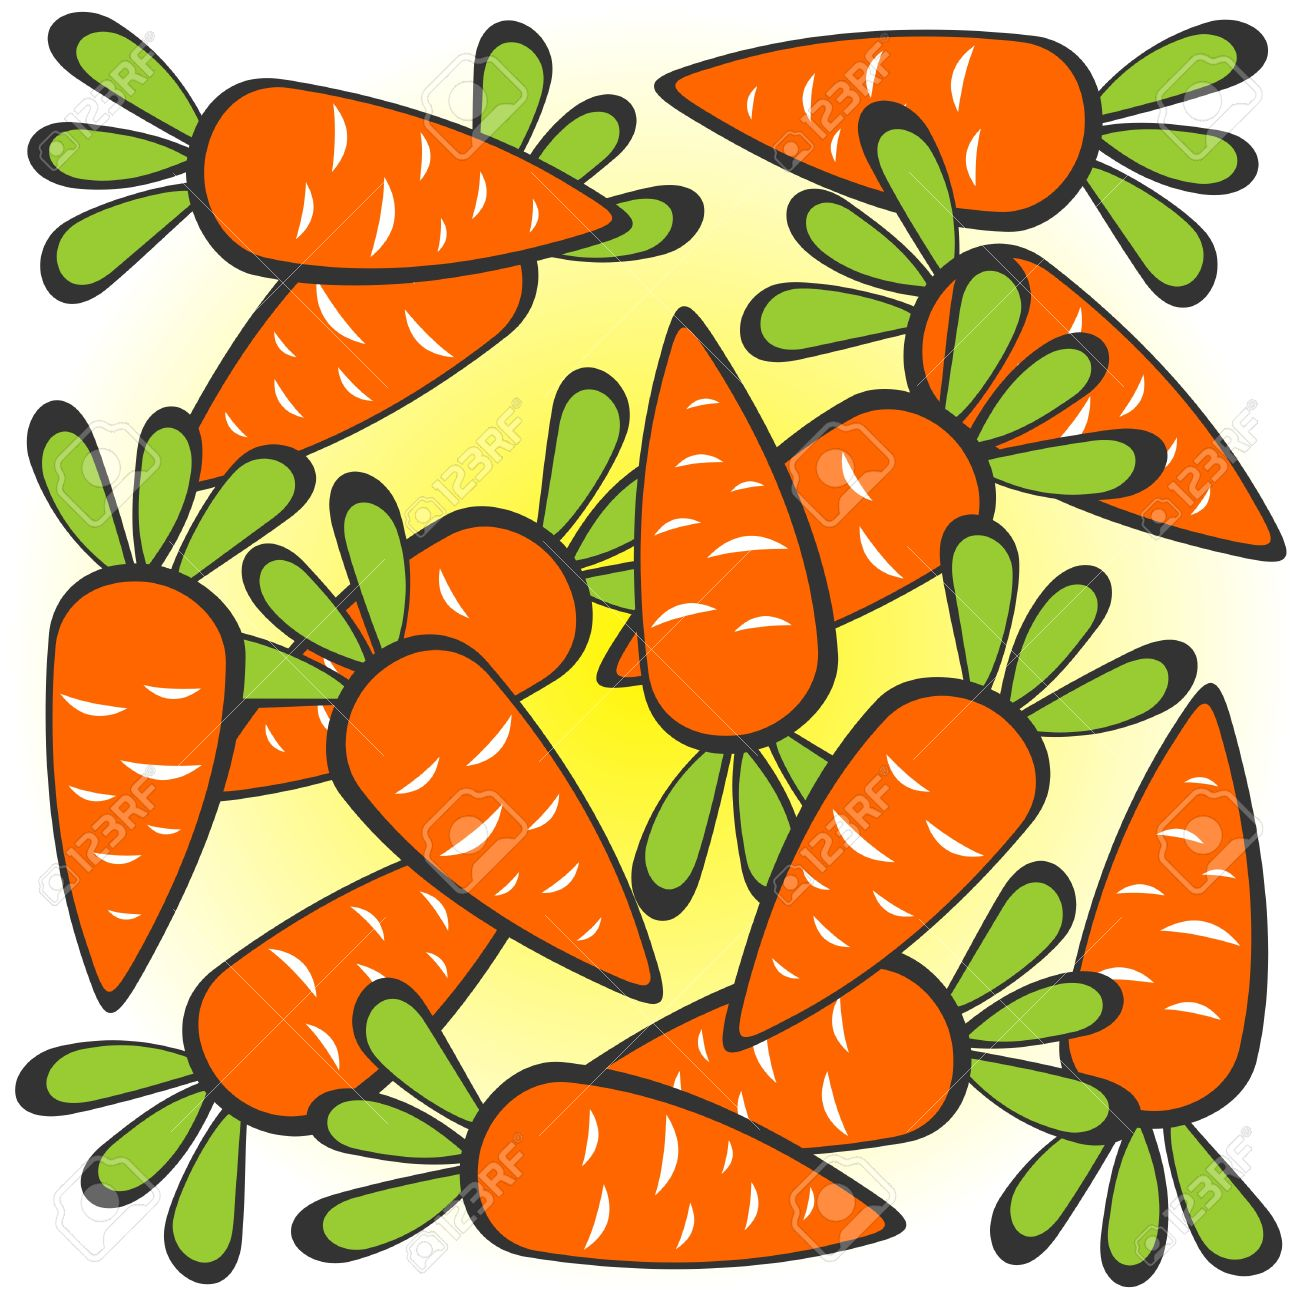 cartoon carrots pattern on a white background royalty free cliparts